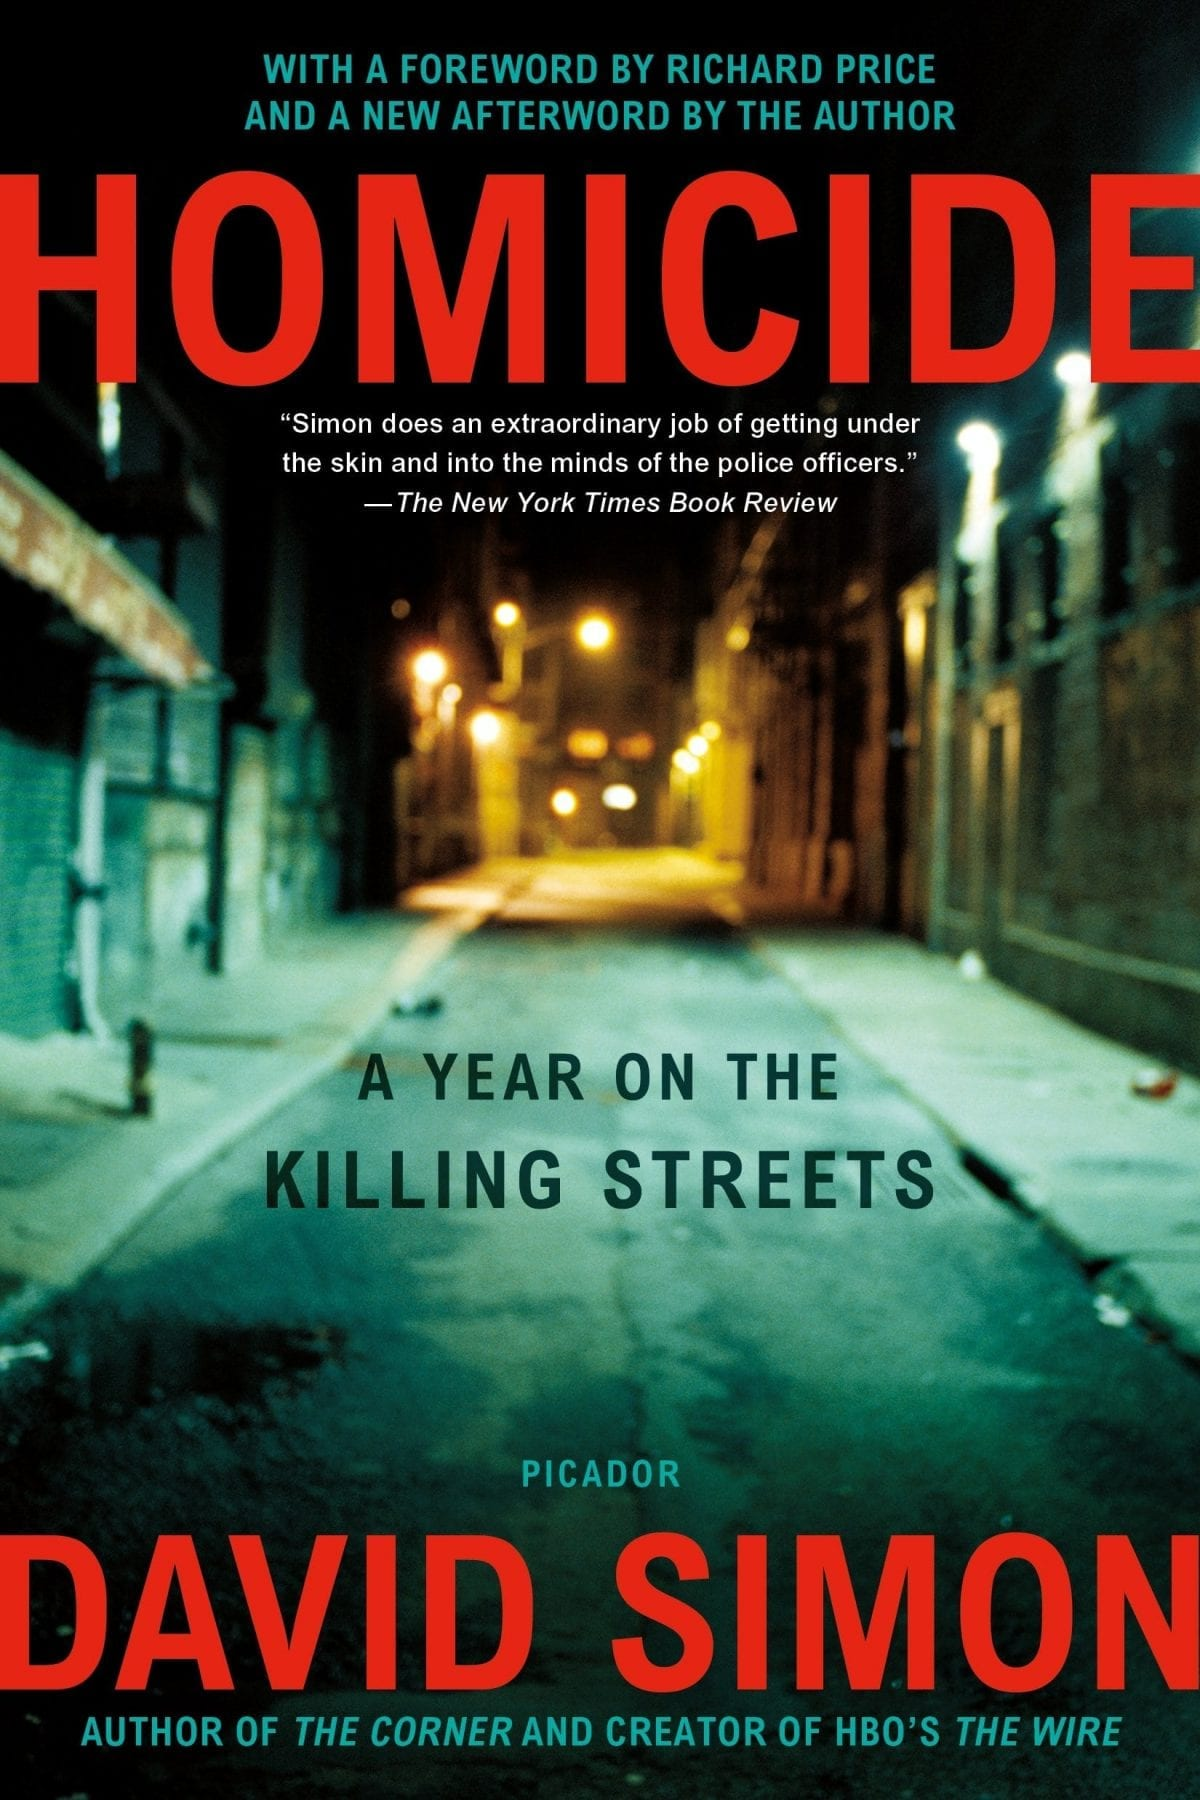 Homicide- A Year on the Killing Streets by David Simon